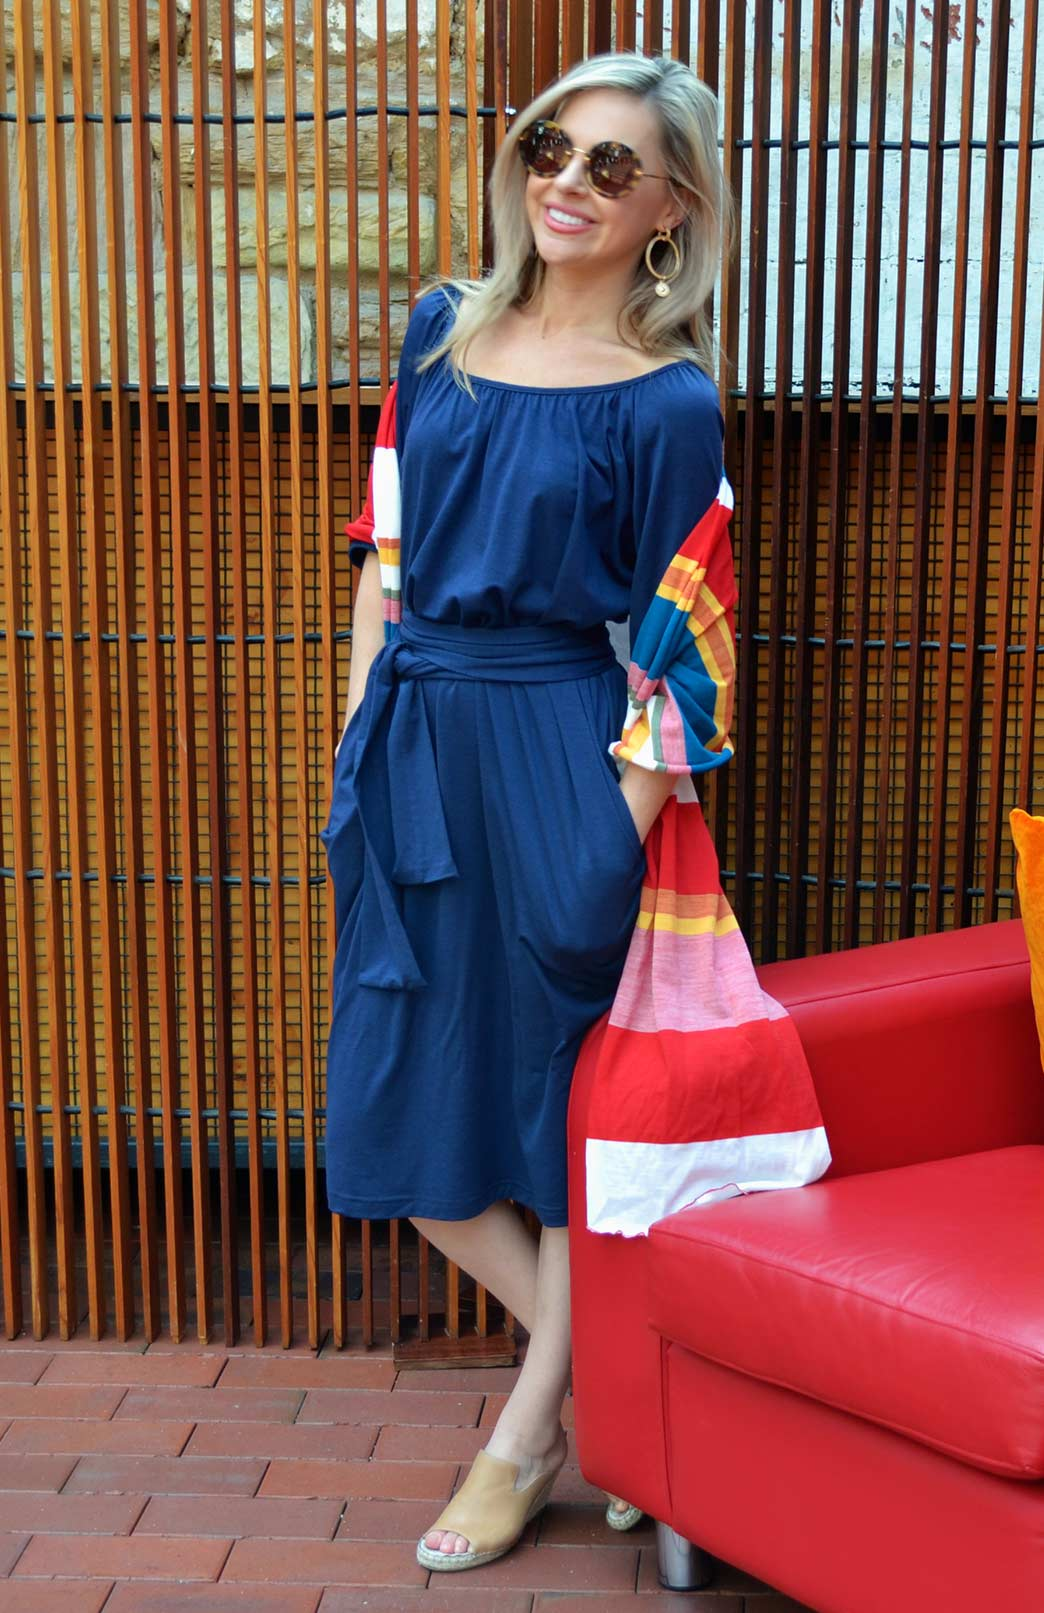 Gabbi Smock Dress - Women's Blue Smock Dress with Waist Tie, Loose Sleeves and Wide Neck - Smitten Merino Tasmania Australia